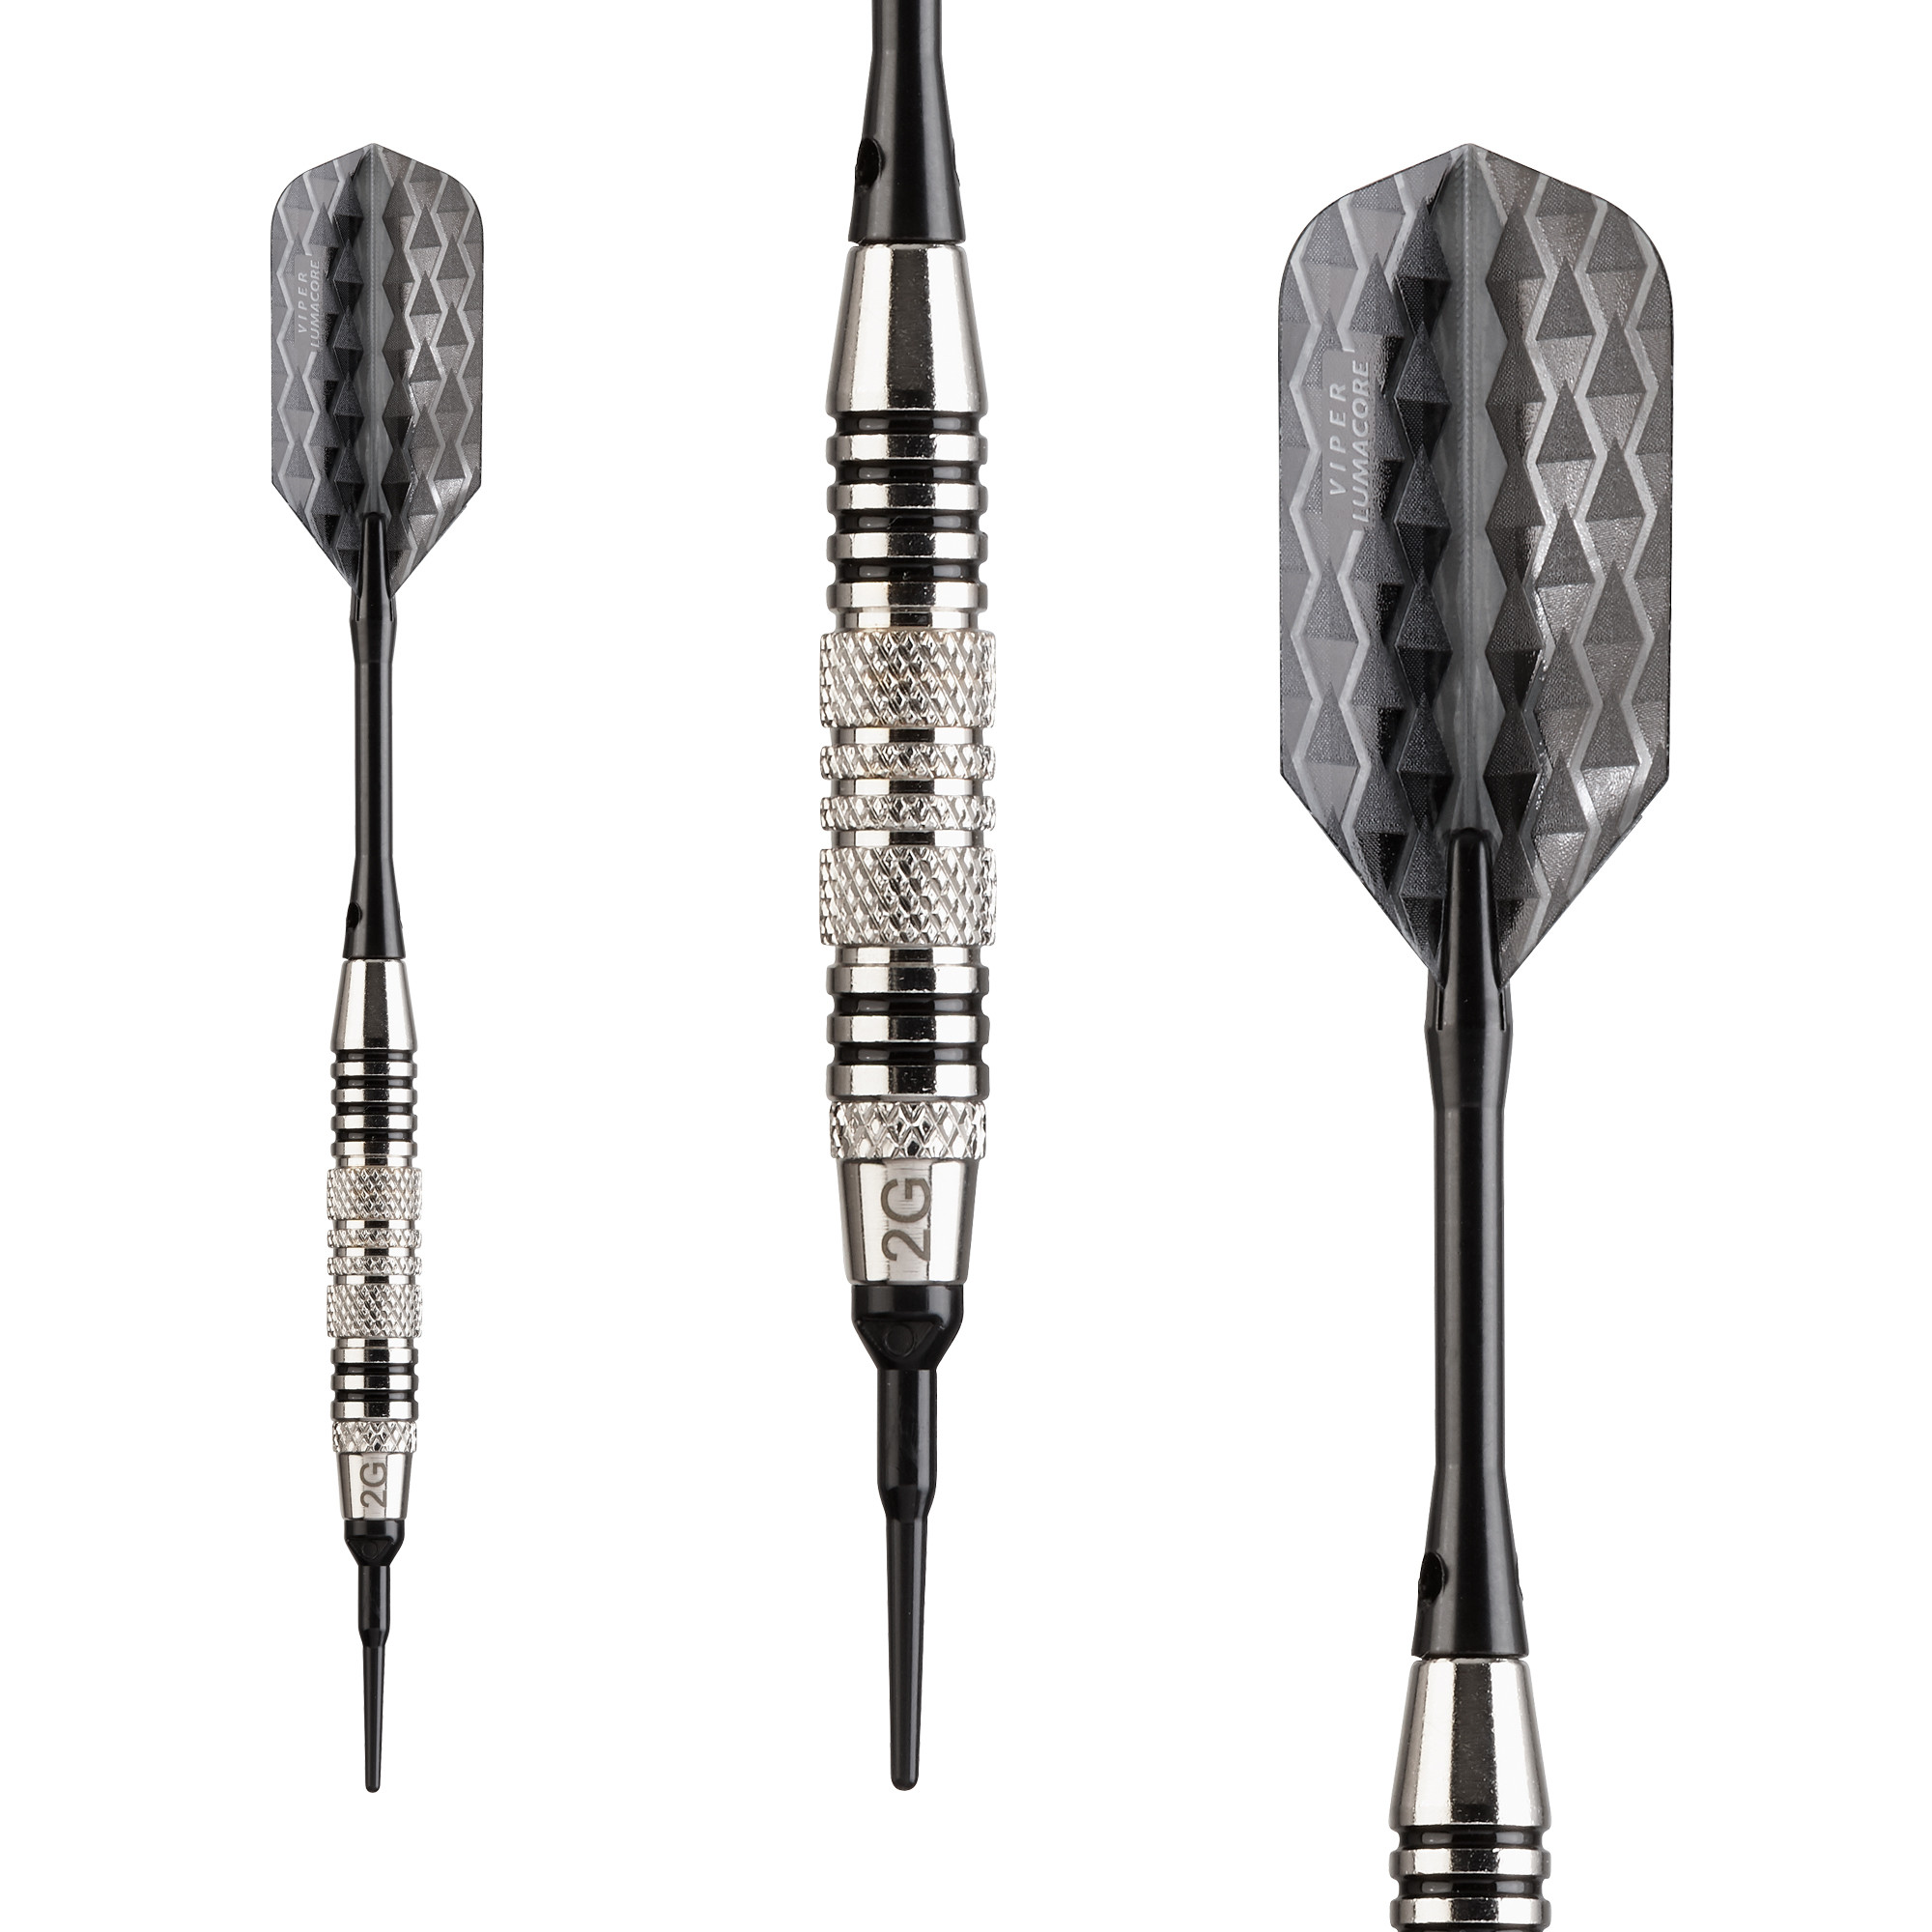 Viper-Bobcat-Adjustable-Weight-Soft-Tip-Darts-with-Storage-Travel-Case-Nicke thumbnail 6